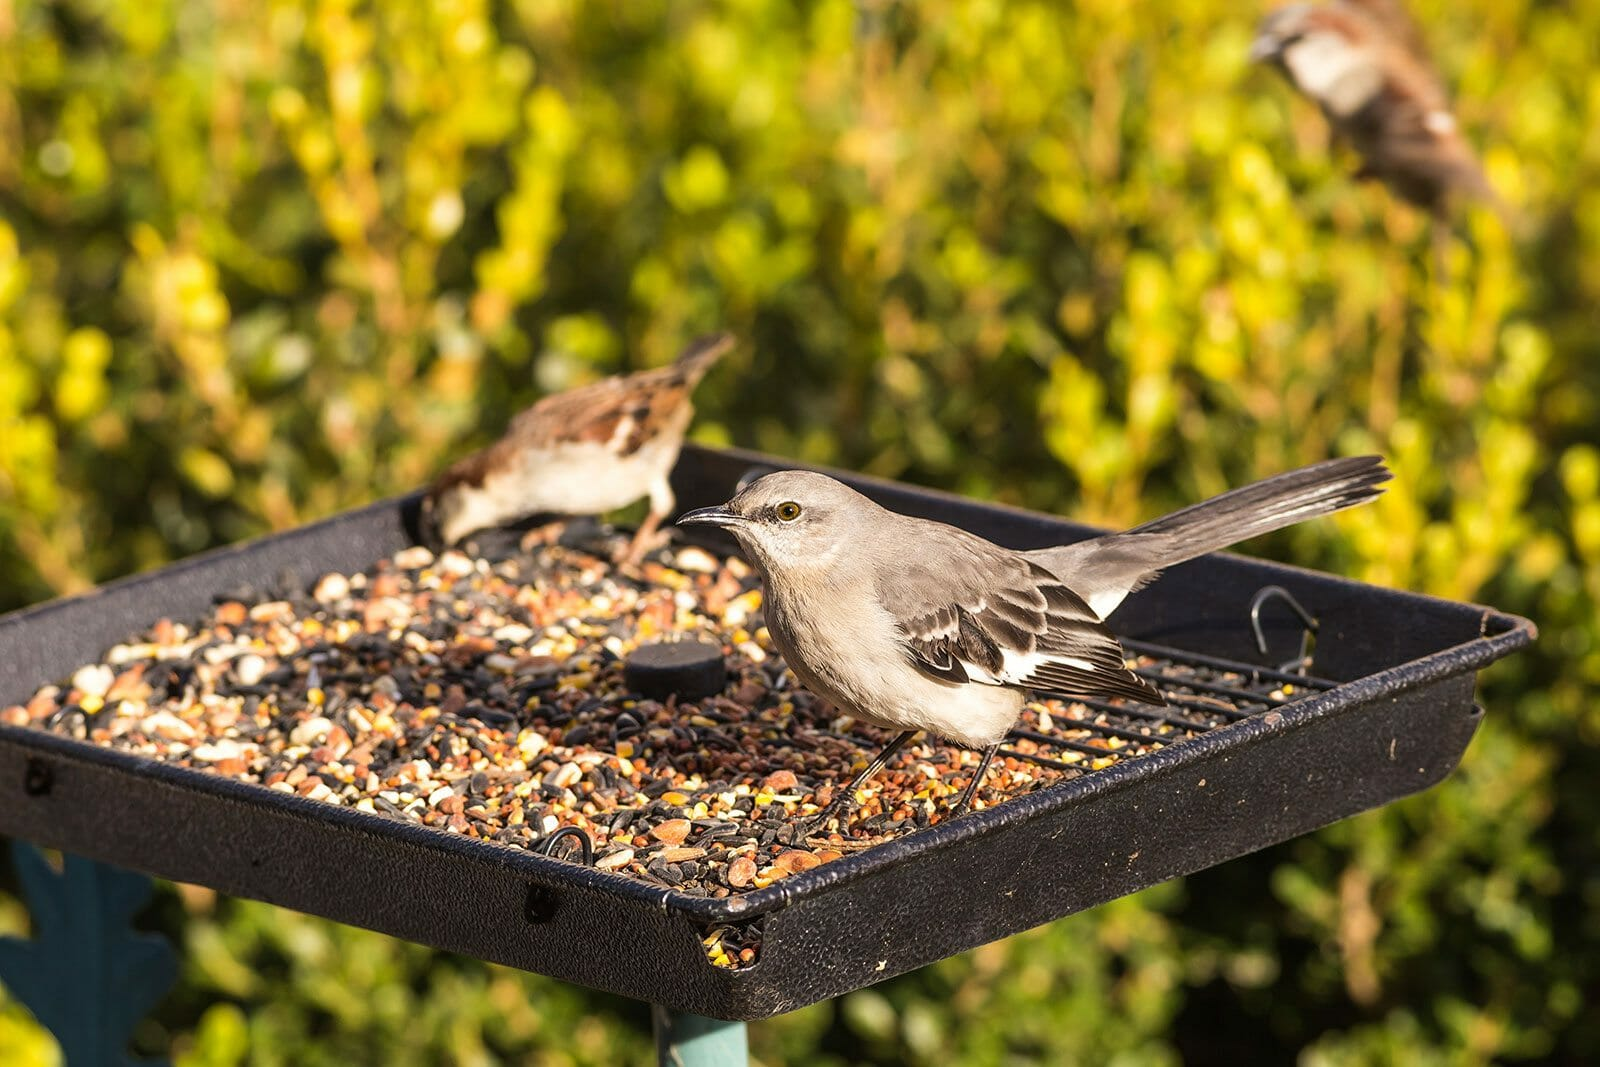 why do birds throw seed out of feeder